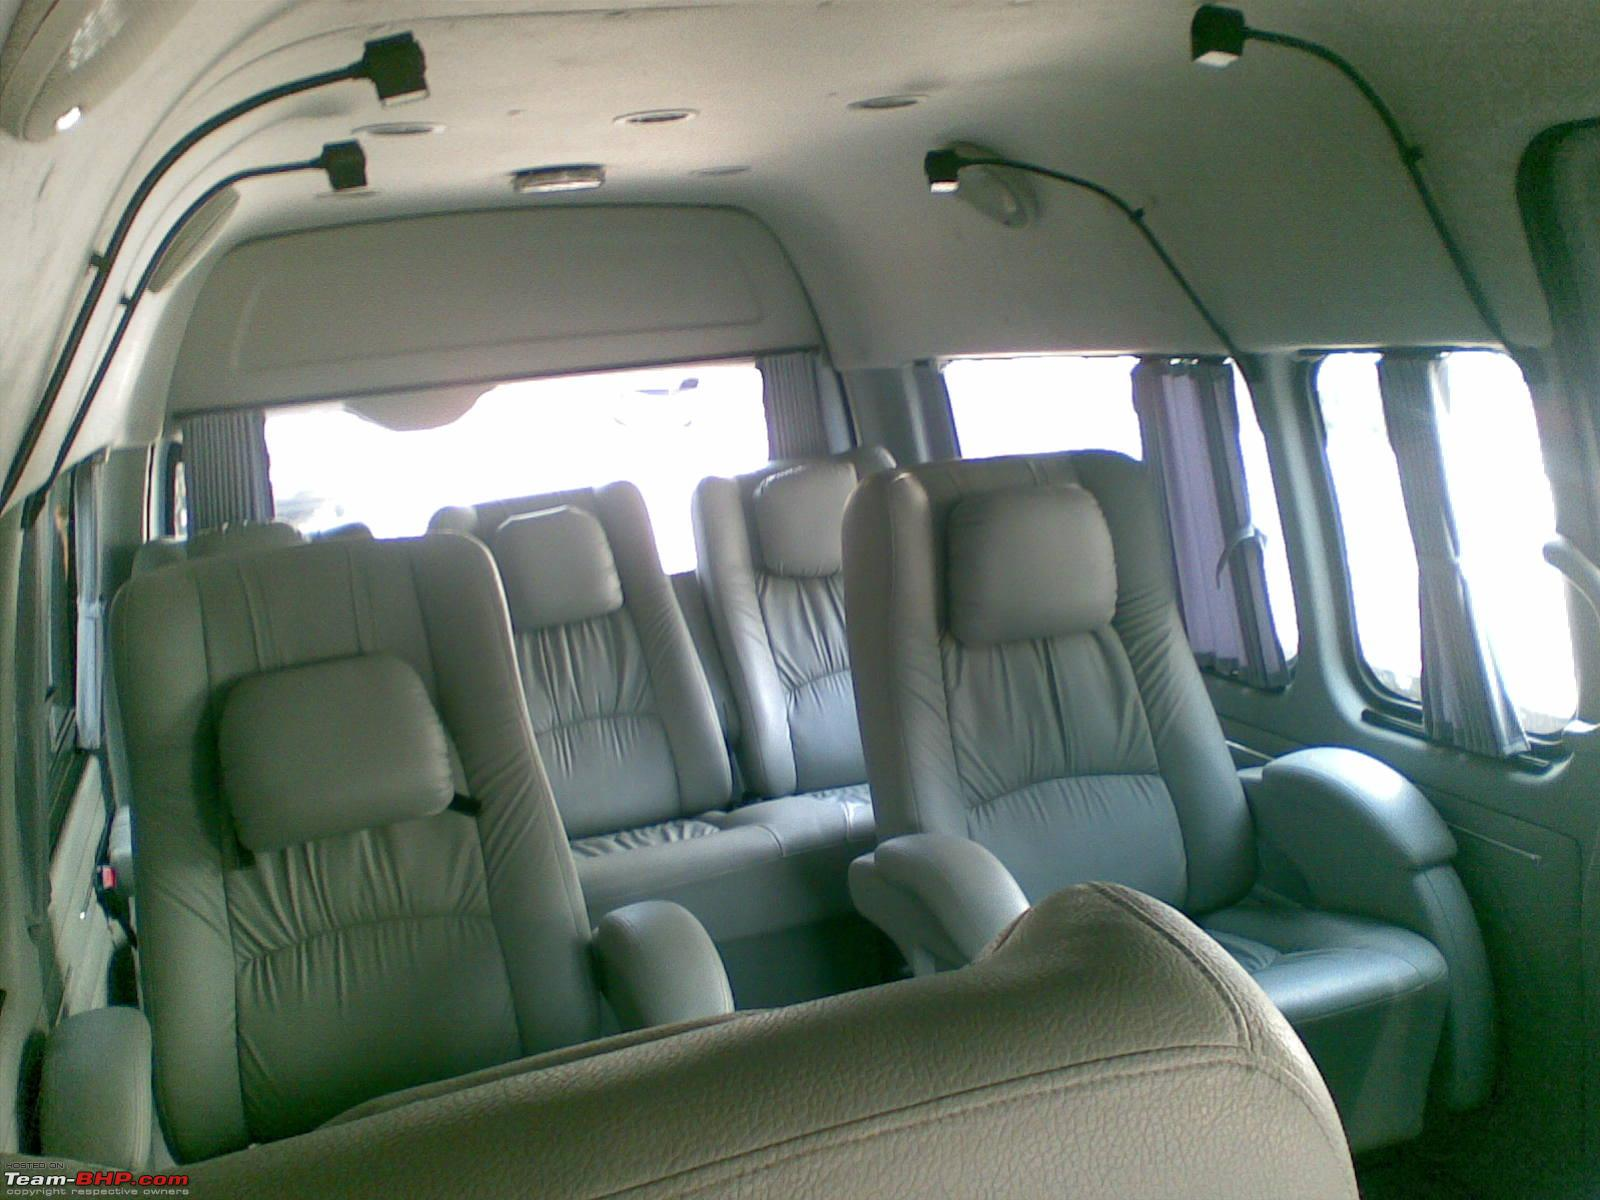 8 seater toyota hiace passenger van is an imported van produced by japanese manufacturer toyota the van is spacious and comfortable with versatile interior